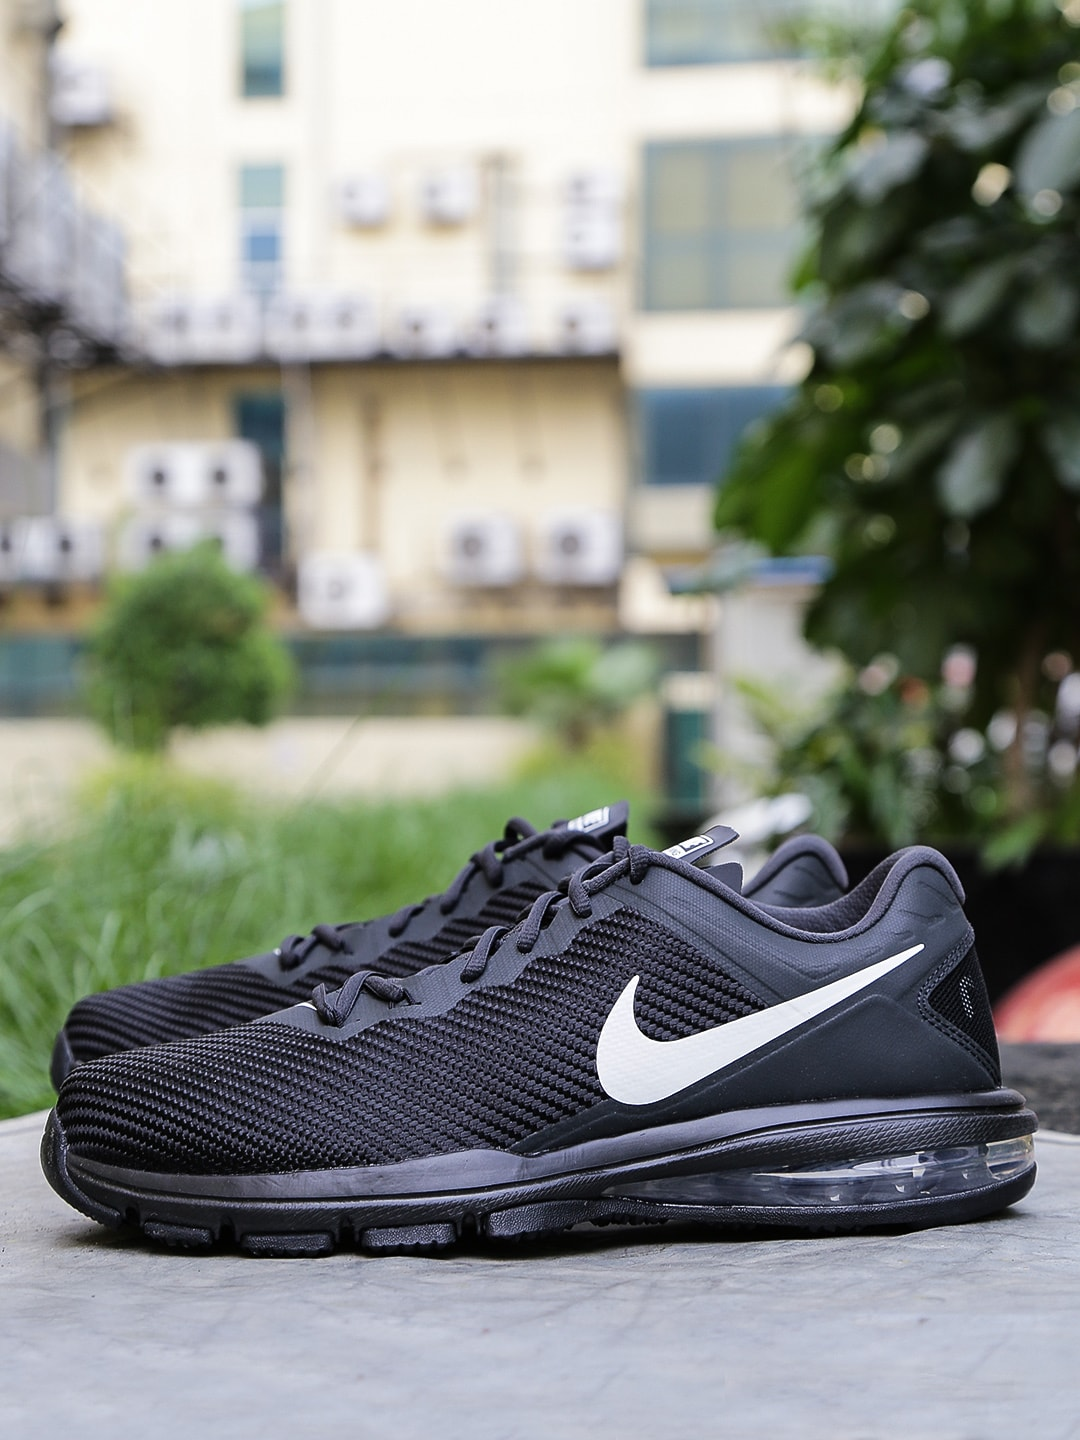 Nike Air Max Full Ride Tr 1.5 Blackwhite-anthracite nike air max tr 180 amp  track brown Nike Air Max - Buy Nike Air Max Shoes, Bags, Sneakers in Ind ...